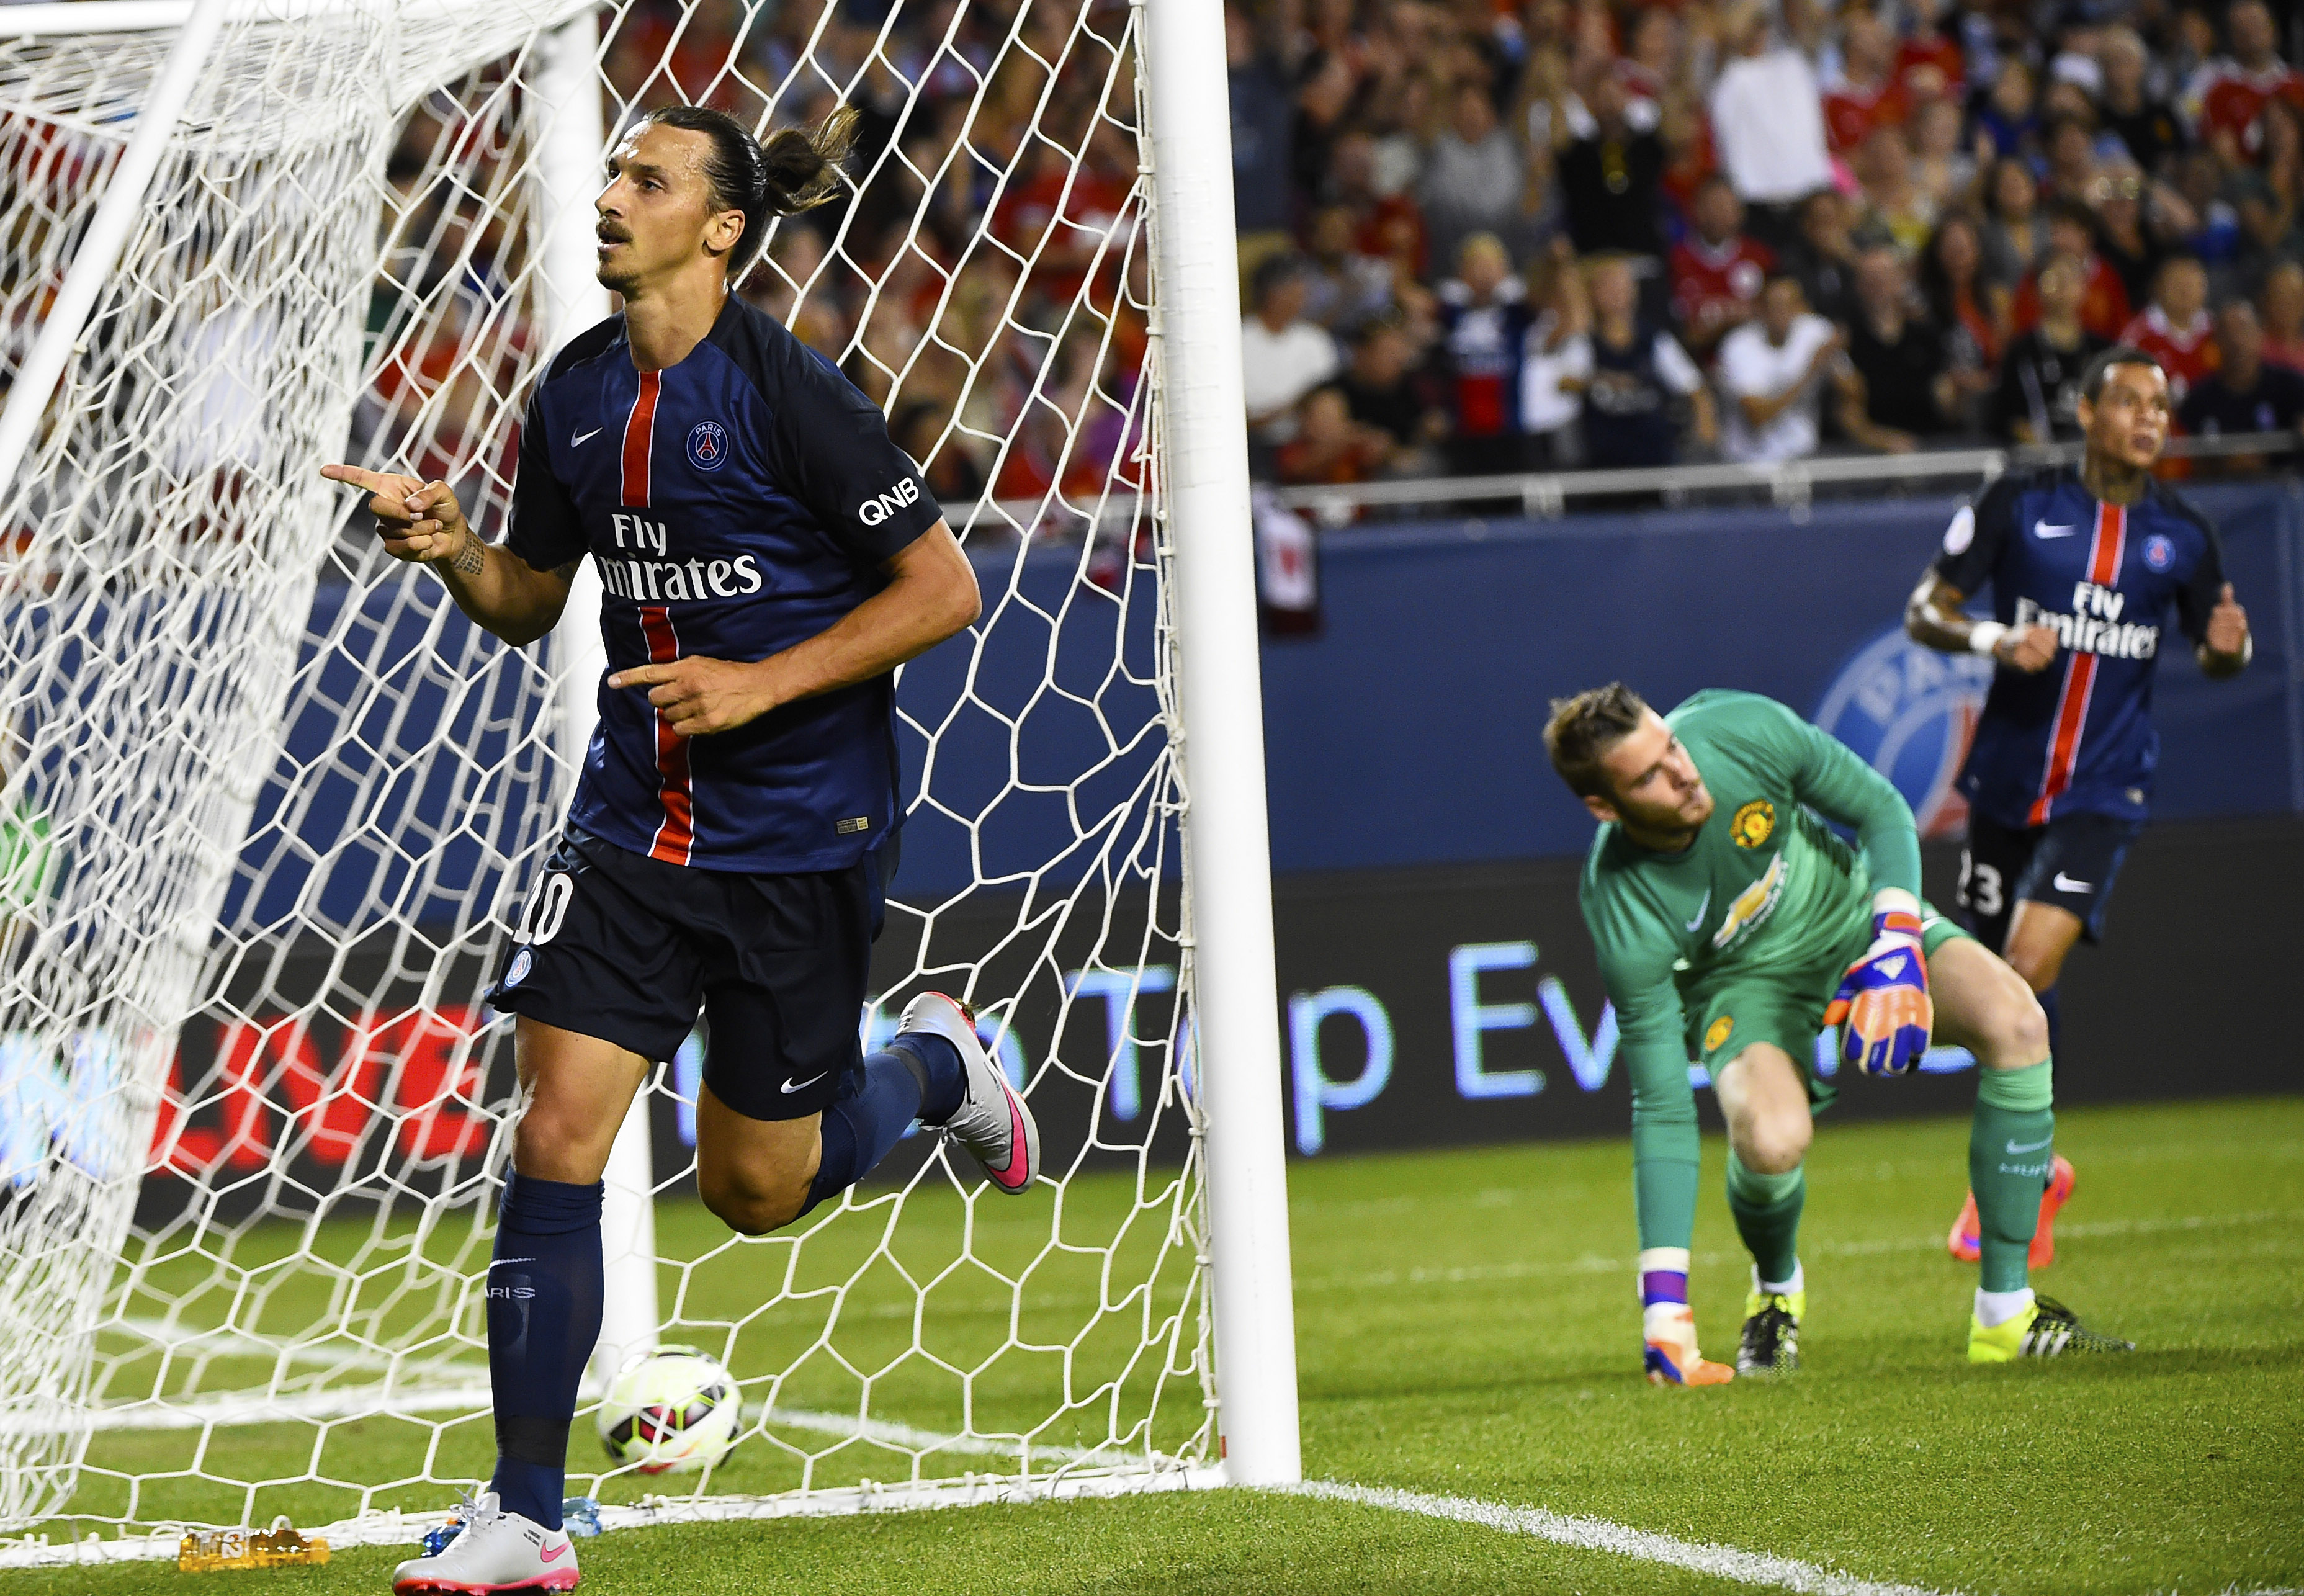 8723741-soccer-international-champions-cup-north-america-manchester-united-at-paris-saint-germaine